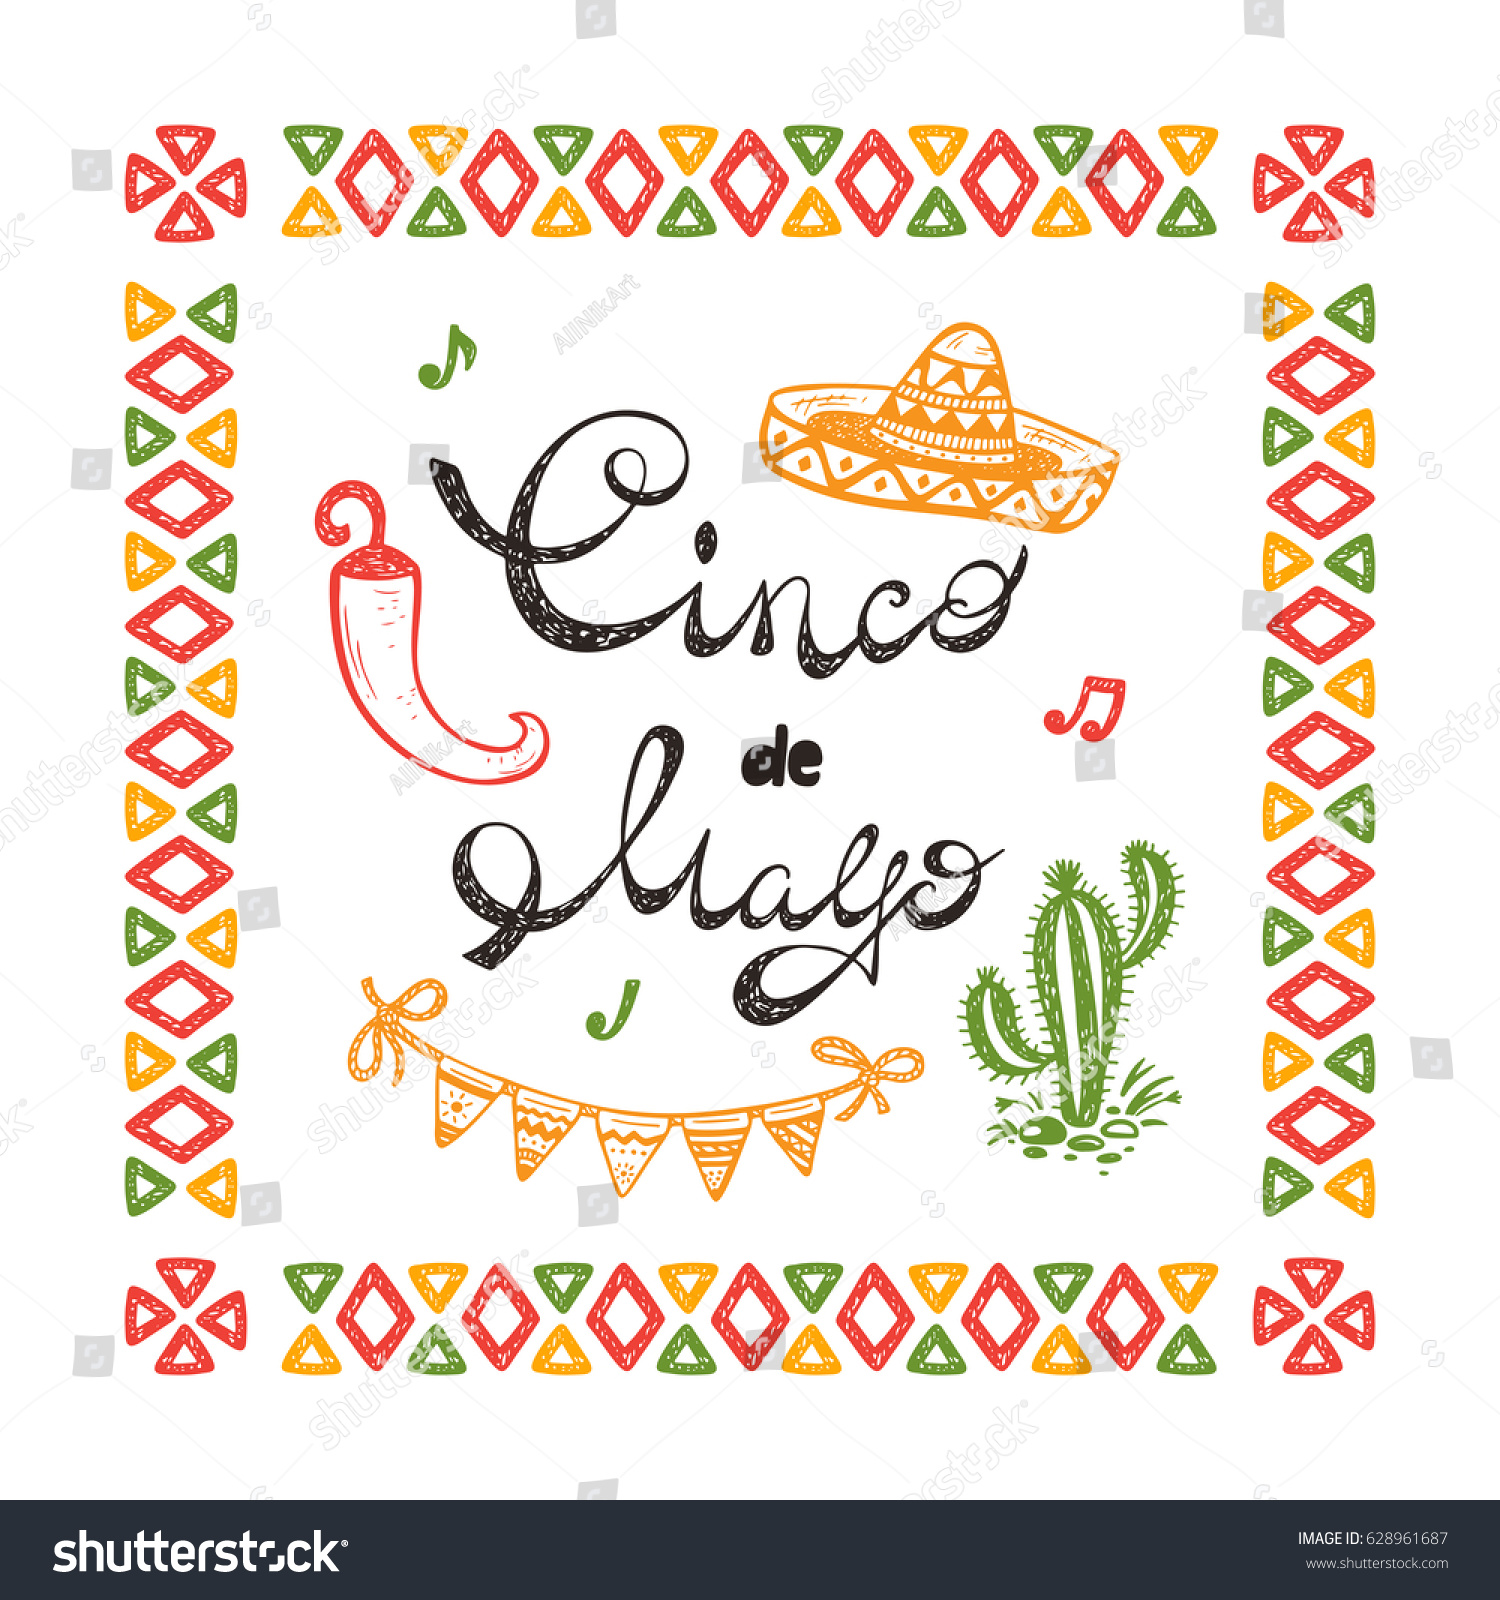 Mexico mexican holiday synco de mayo stock photo photo vector mexico mexican holiday synco de mayo vector greeting card with hand drawn doodle sombrero m4hsunfo